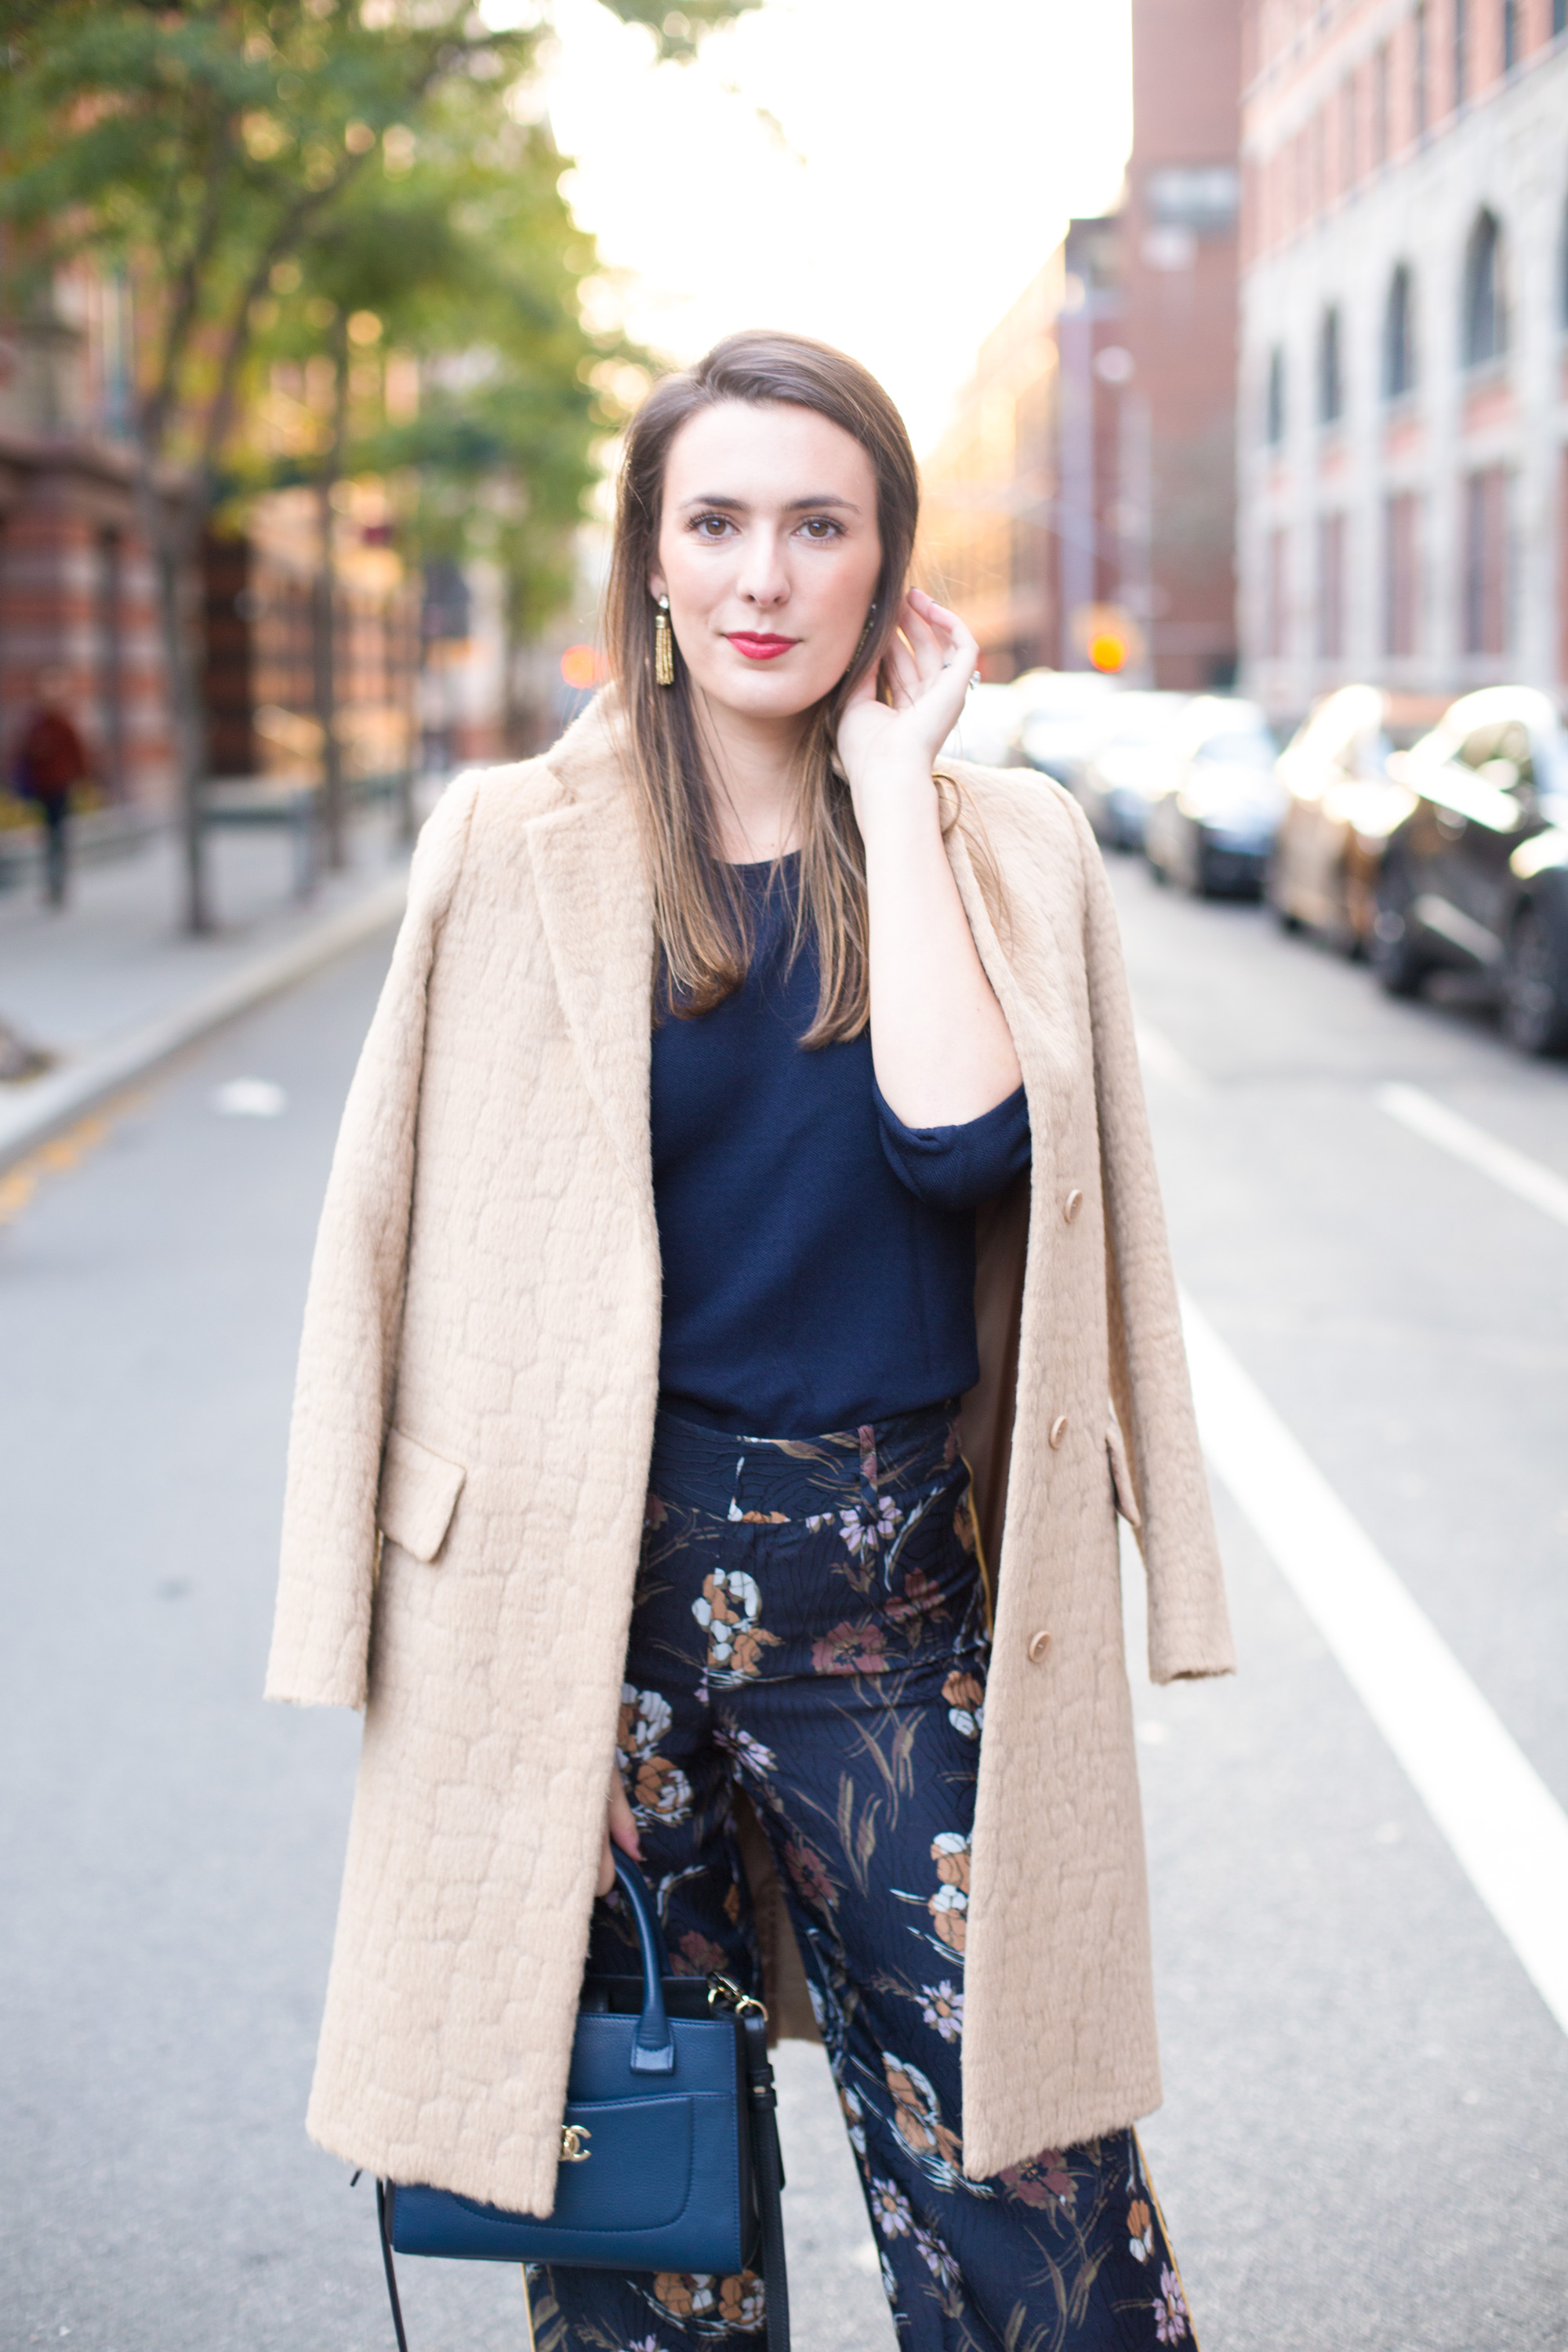 Samantha Metell New York City Based Style and Beauty Blogger